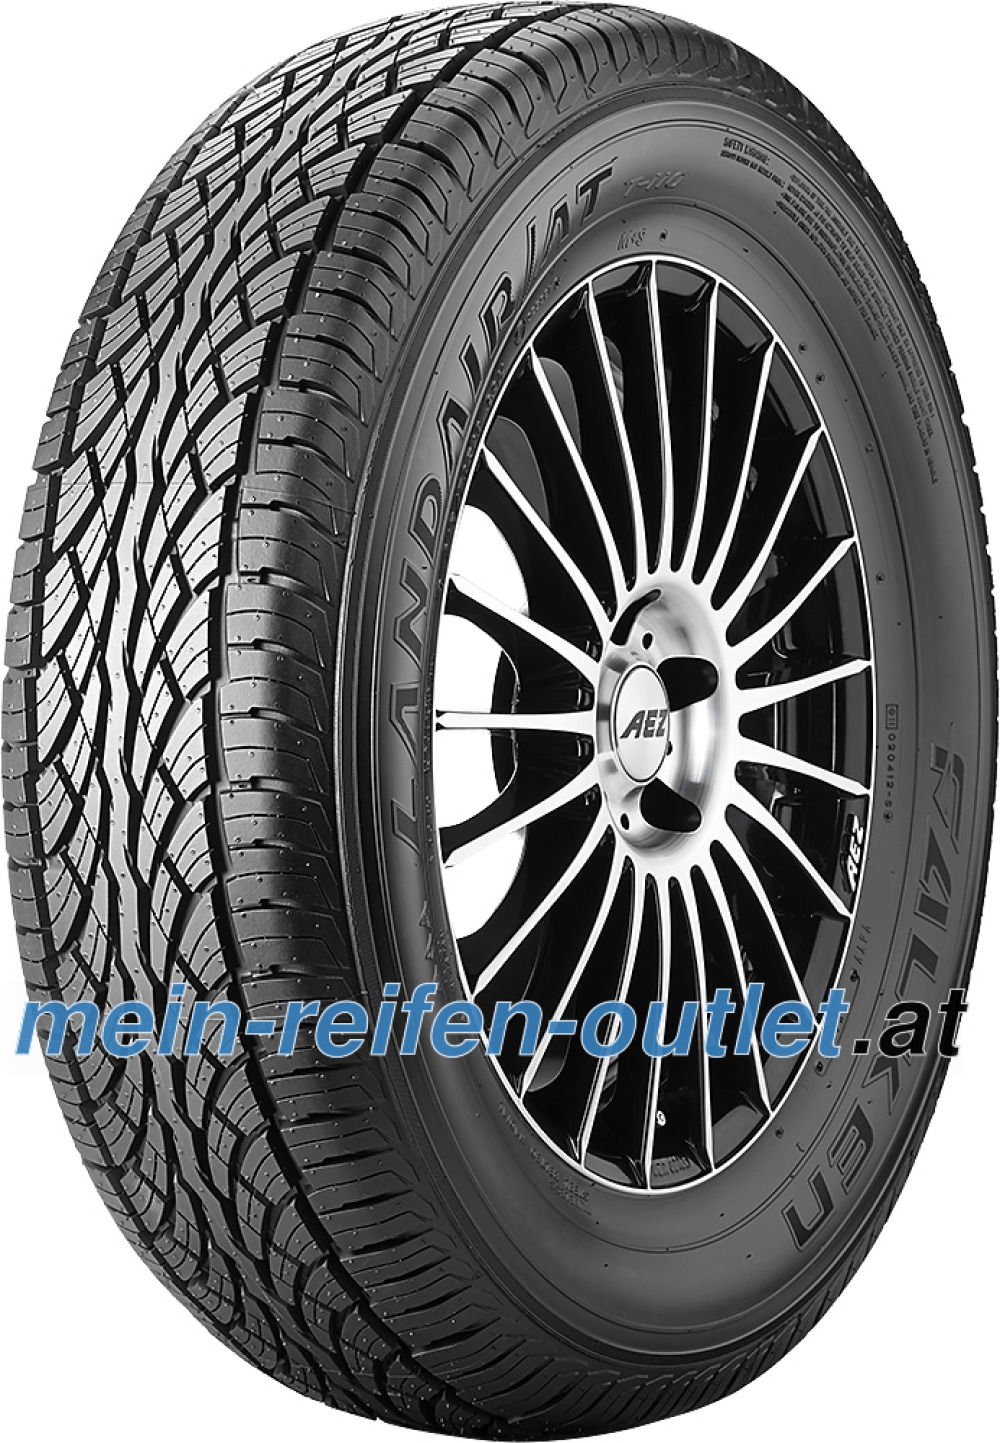 Falken Landair/AT T-110 ( 205/70 R15 95H )